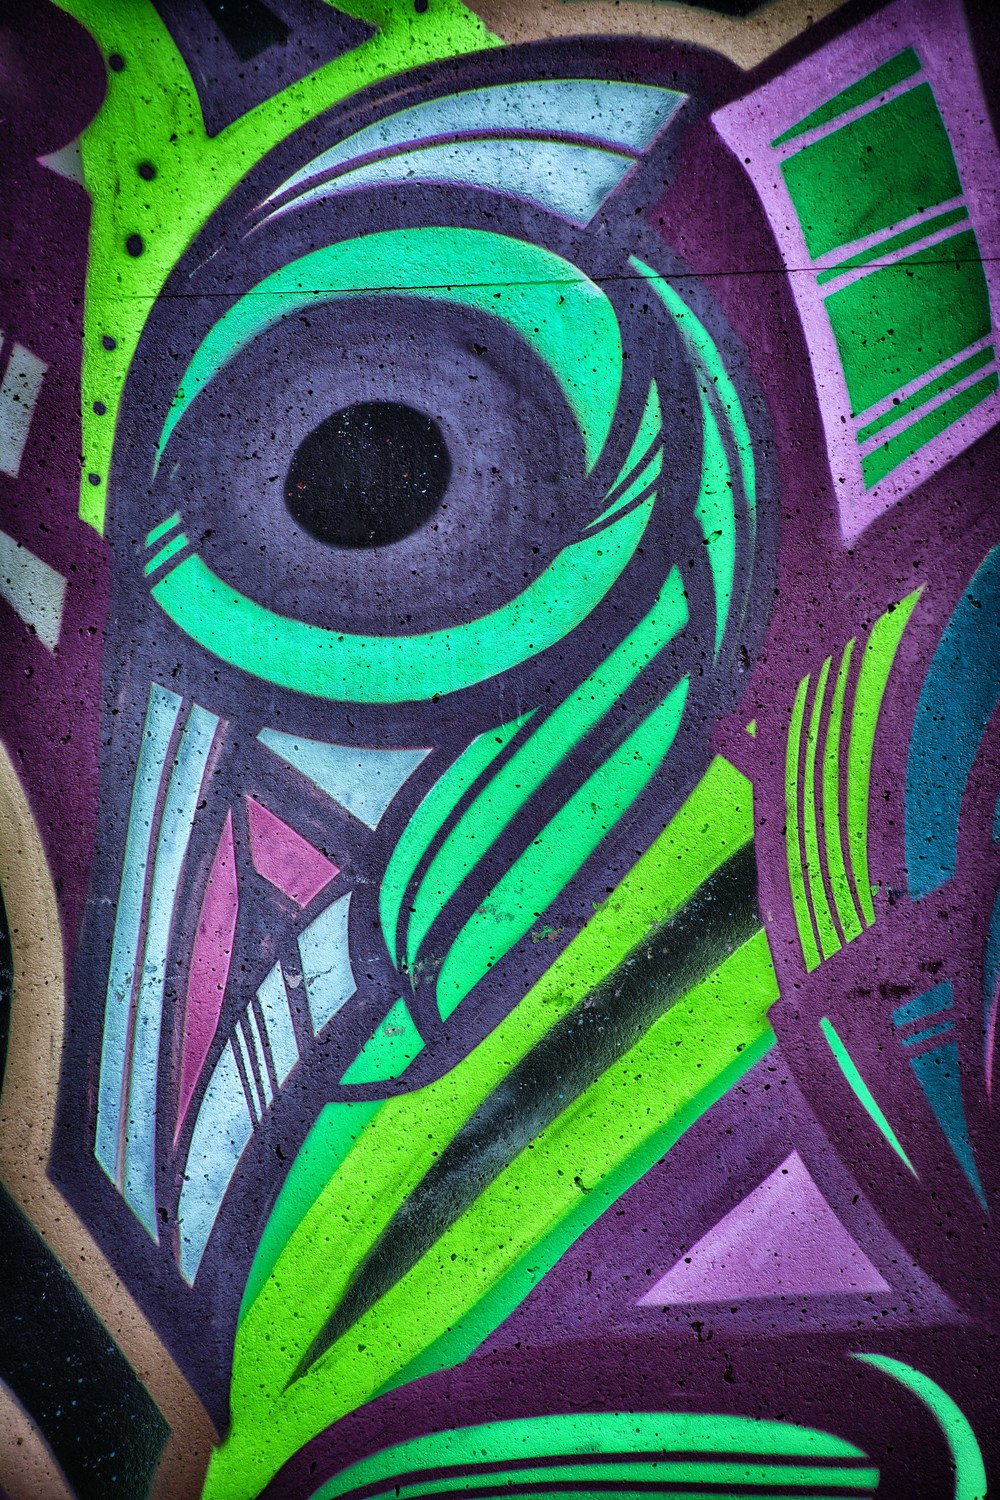 grafitti eye sm.jpg